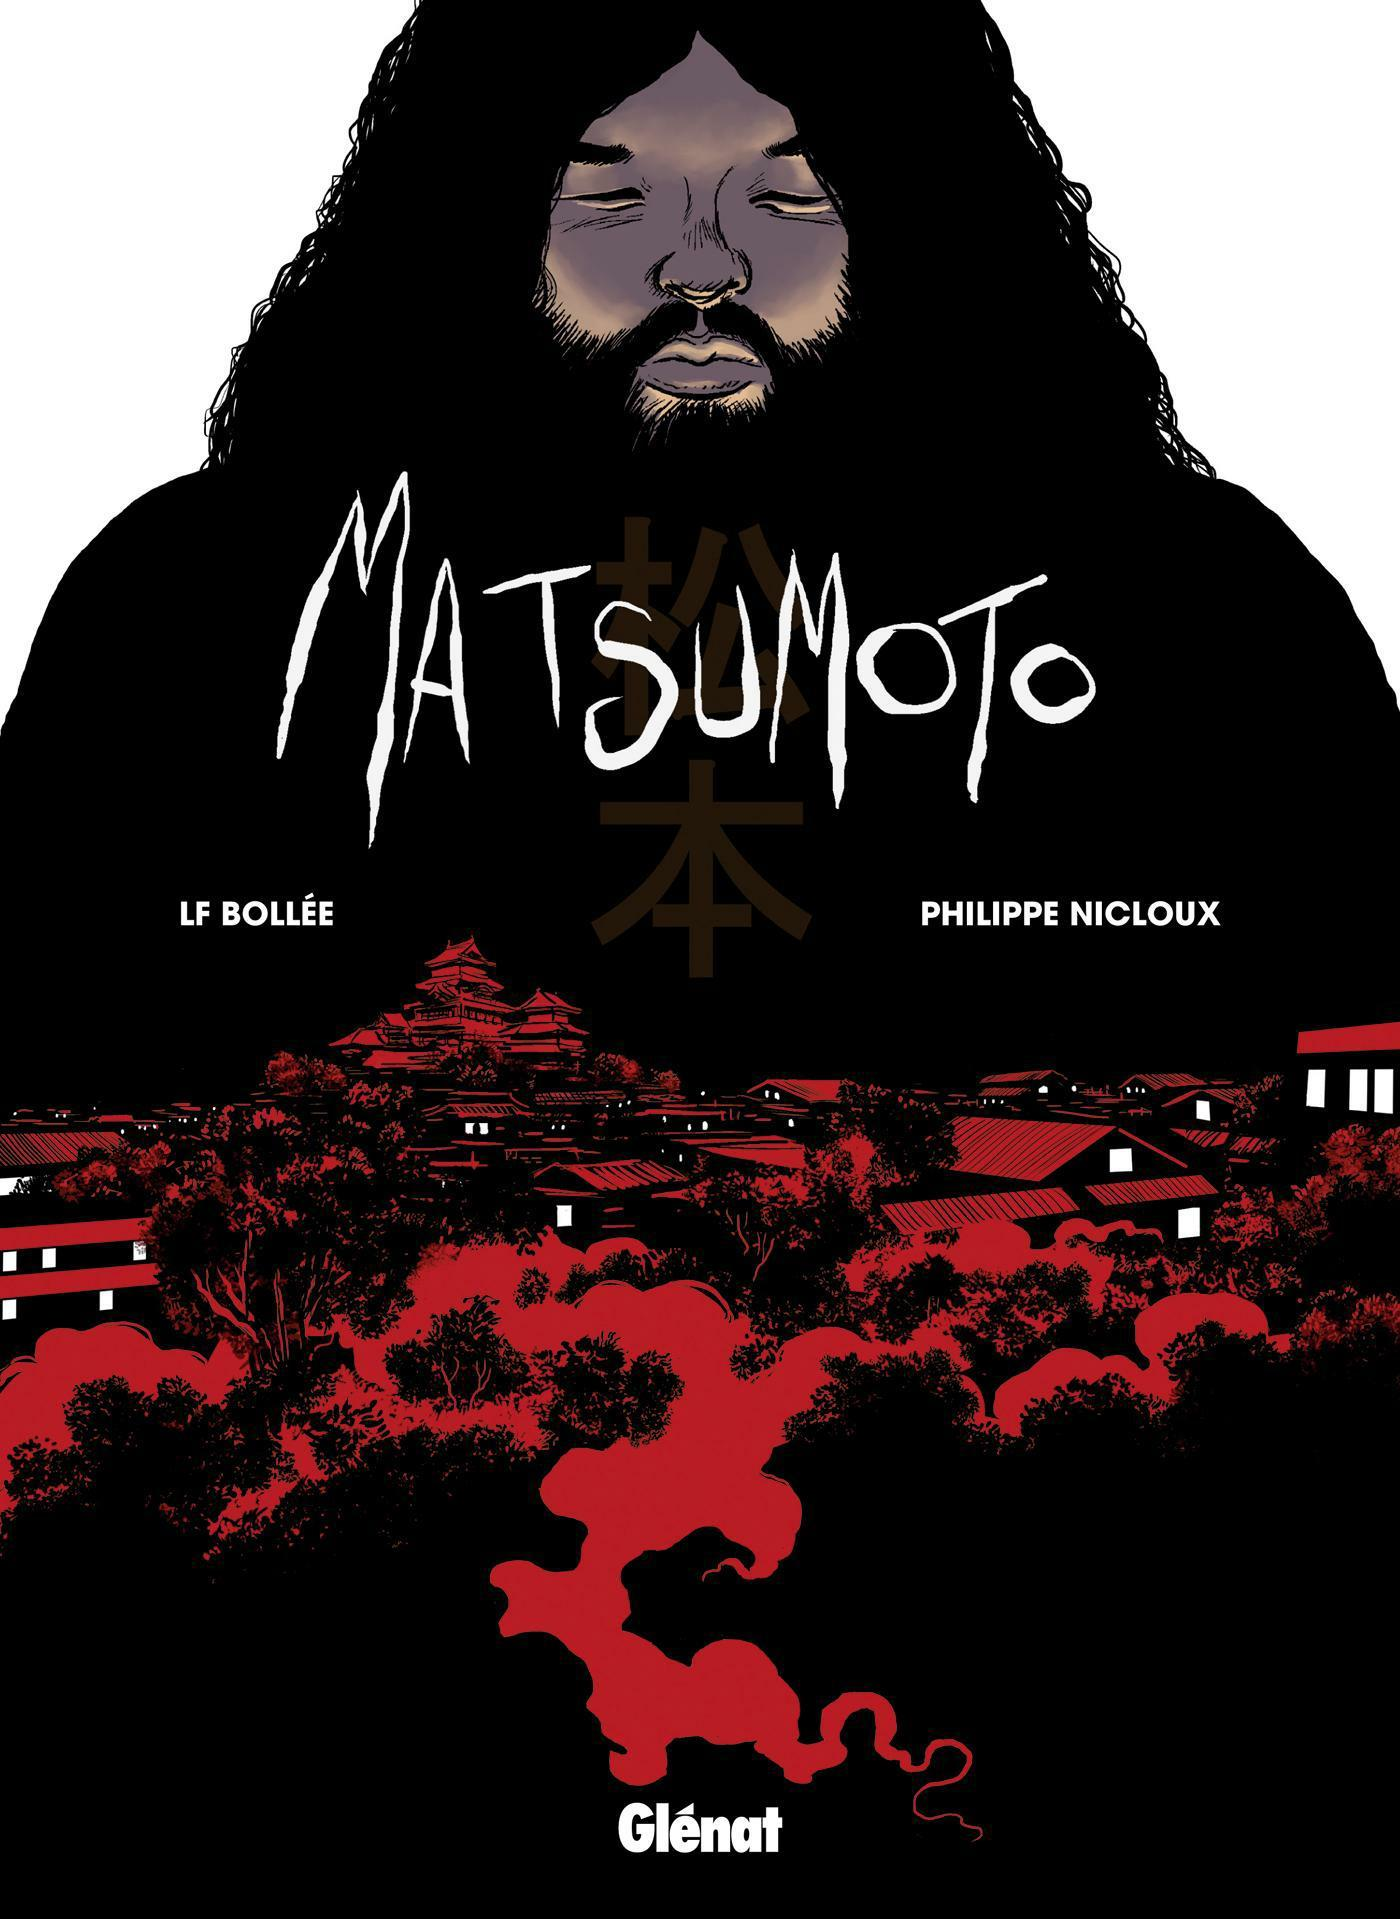 Matsumoto  - Laurent-Frederic Bollee  - Philippe Nicloux